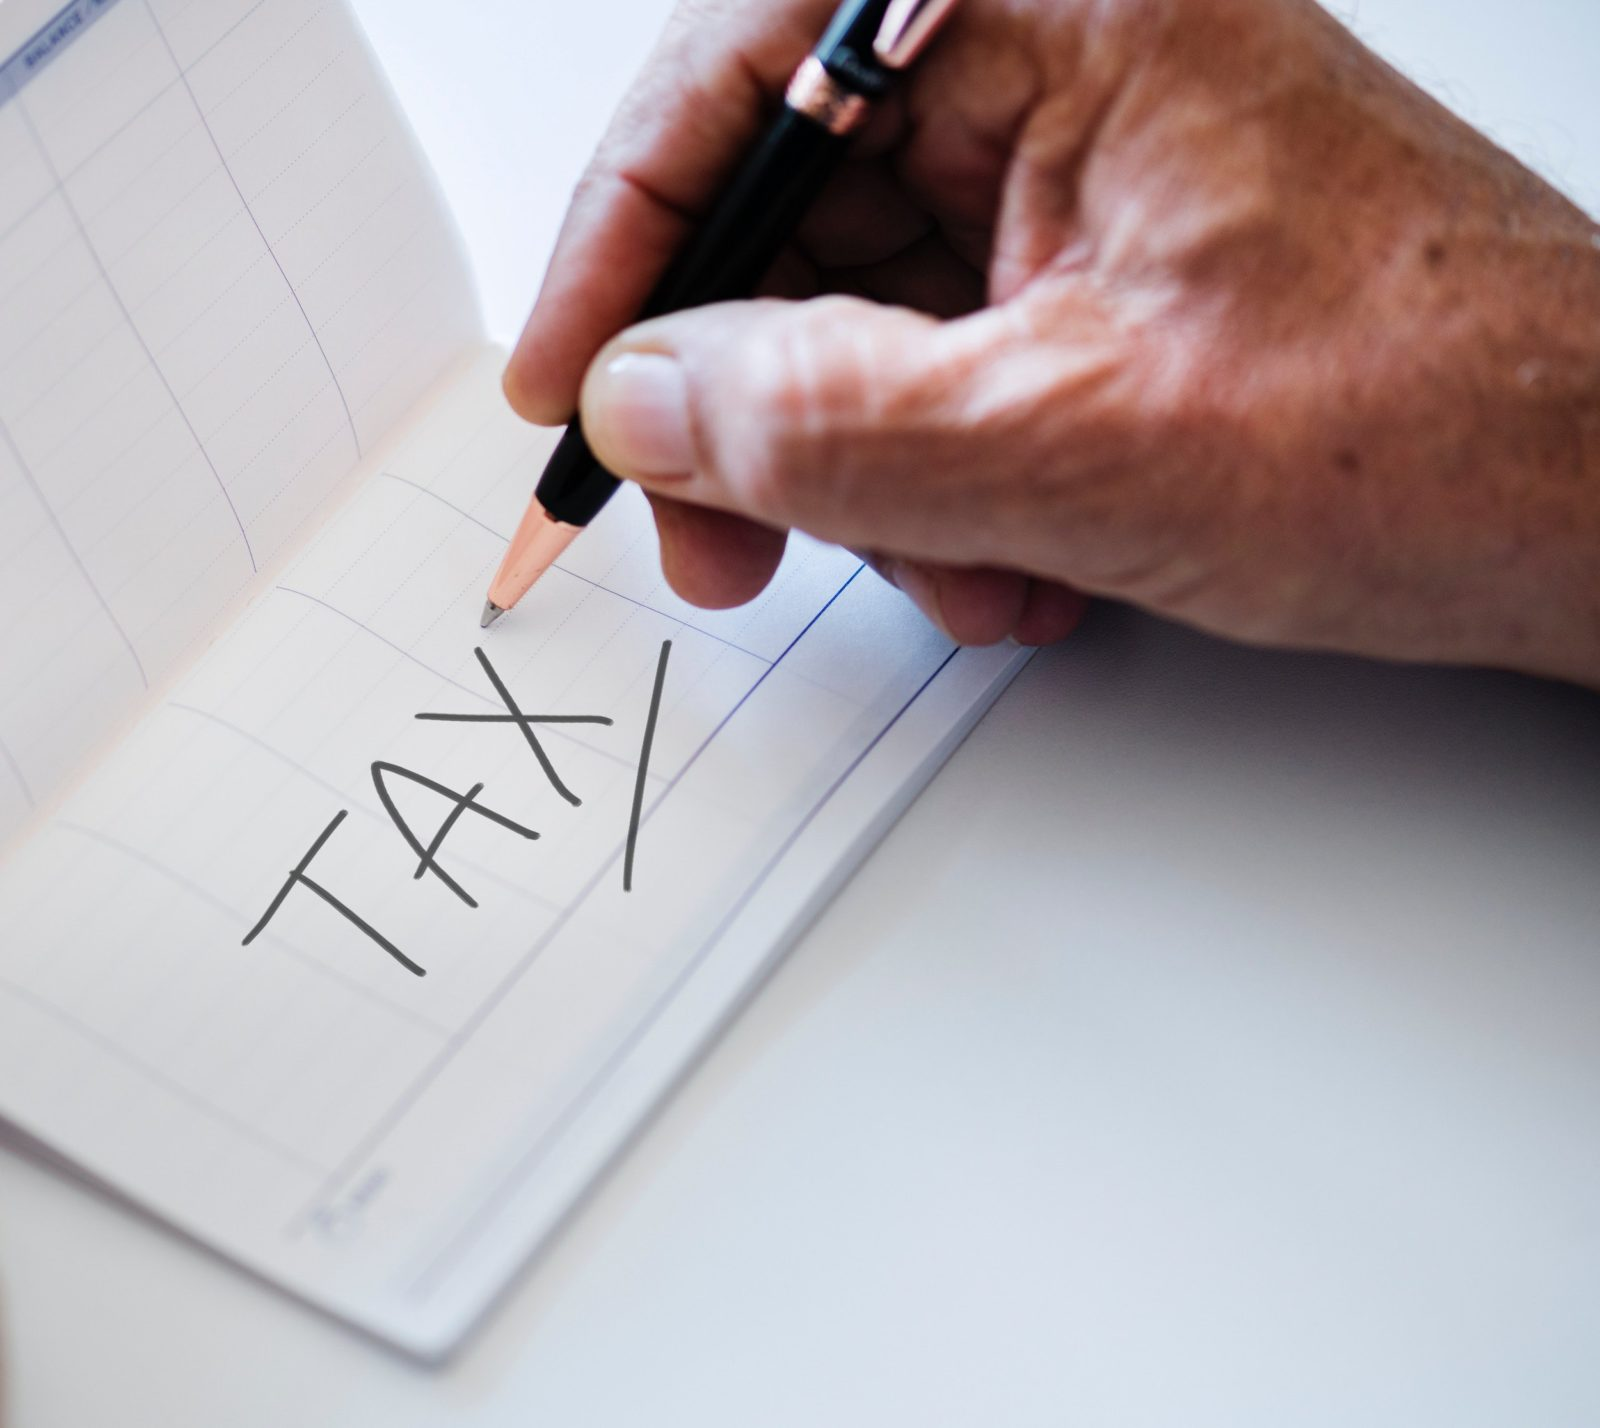 The new Transit Tax does not go into effect until July 1, but Intuit/QuickBooks has already put it into the payroll items list so it is affecting payroll.